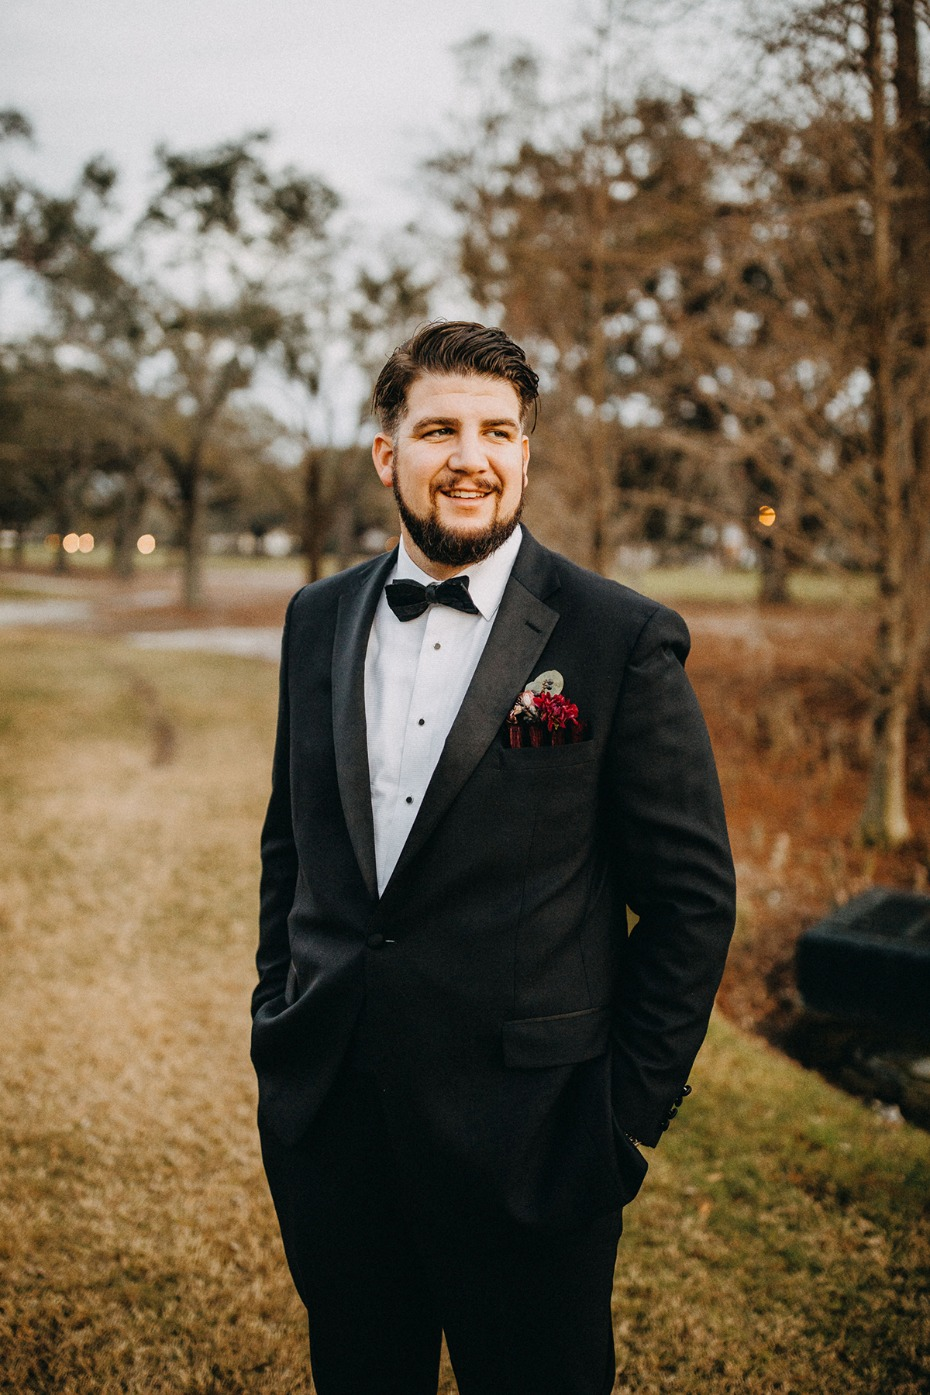 groom in classic black tie